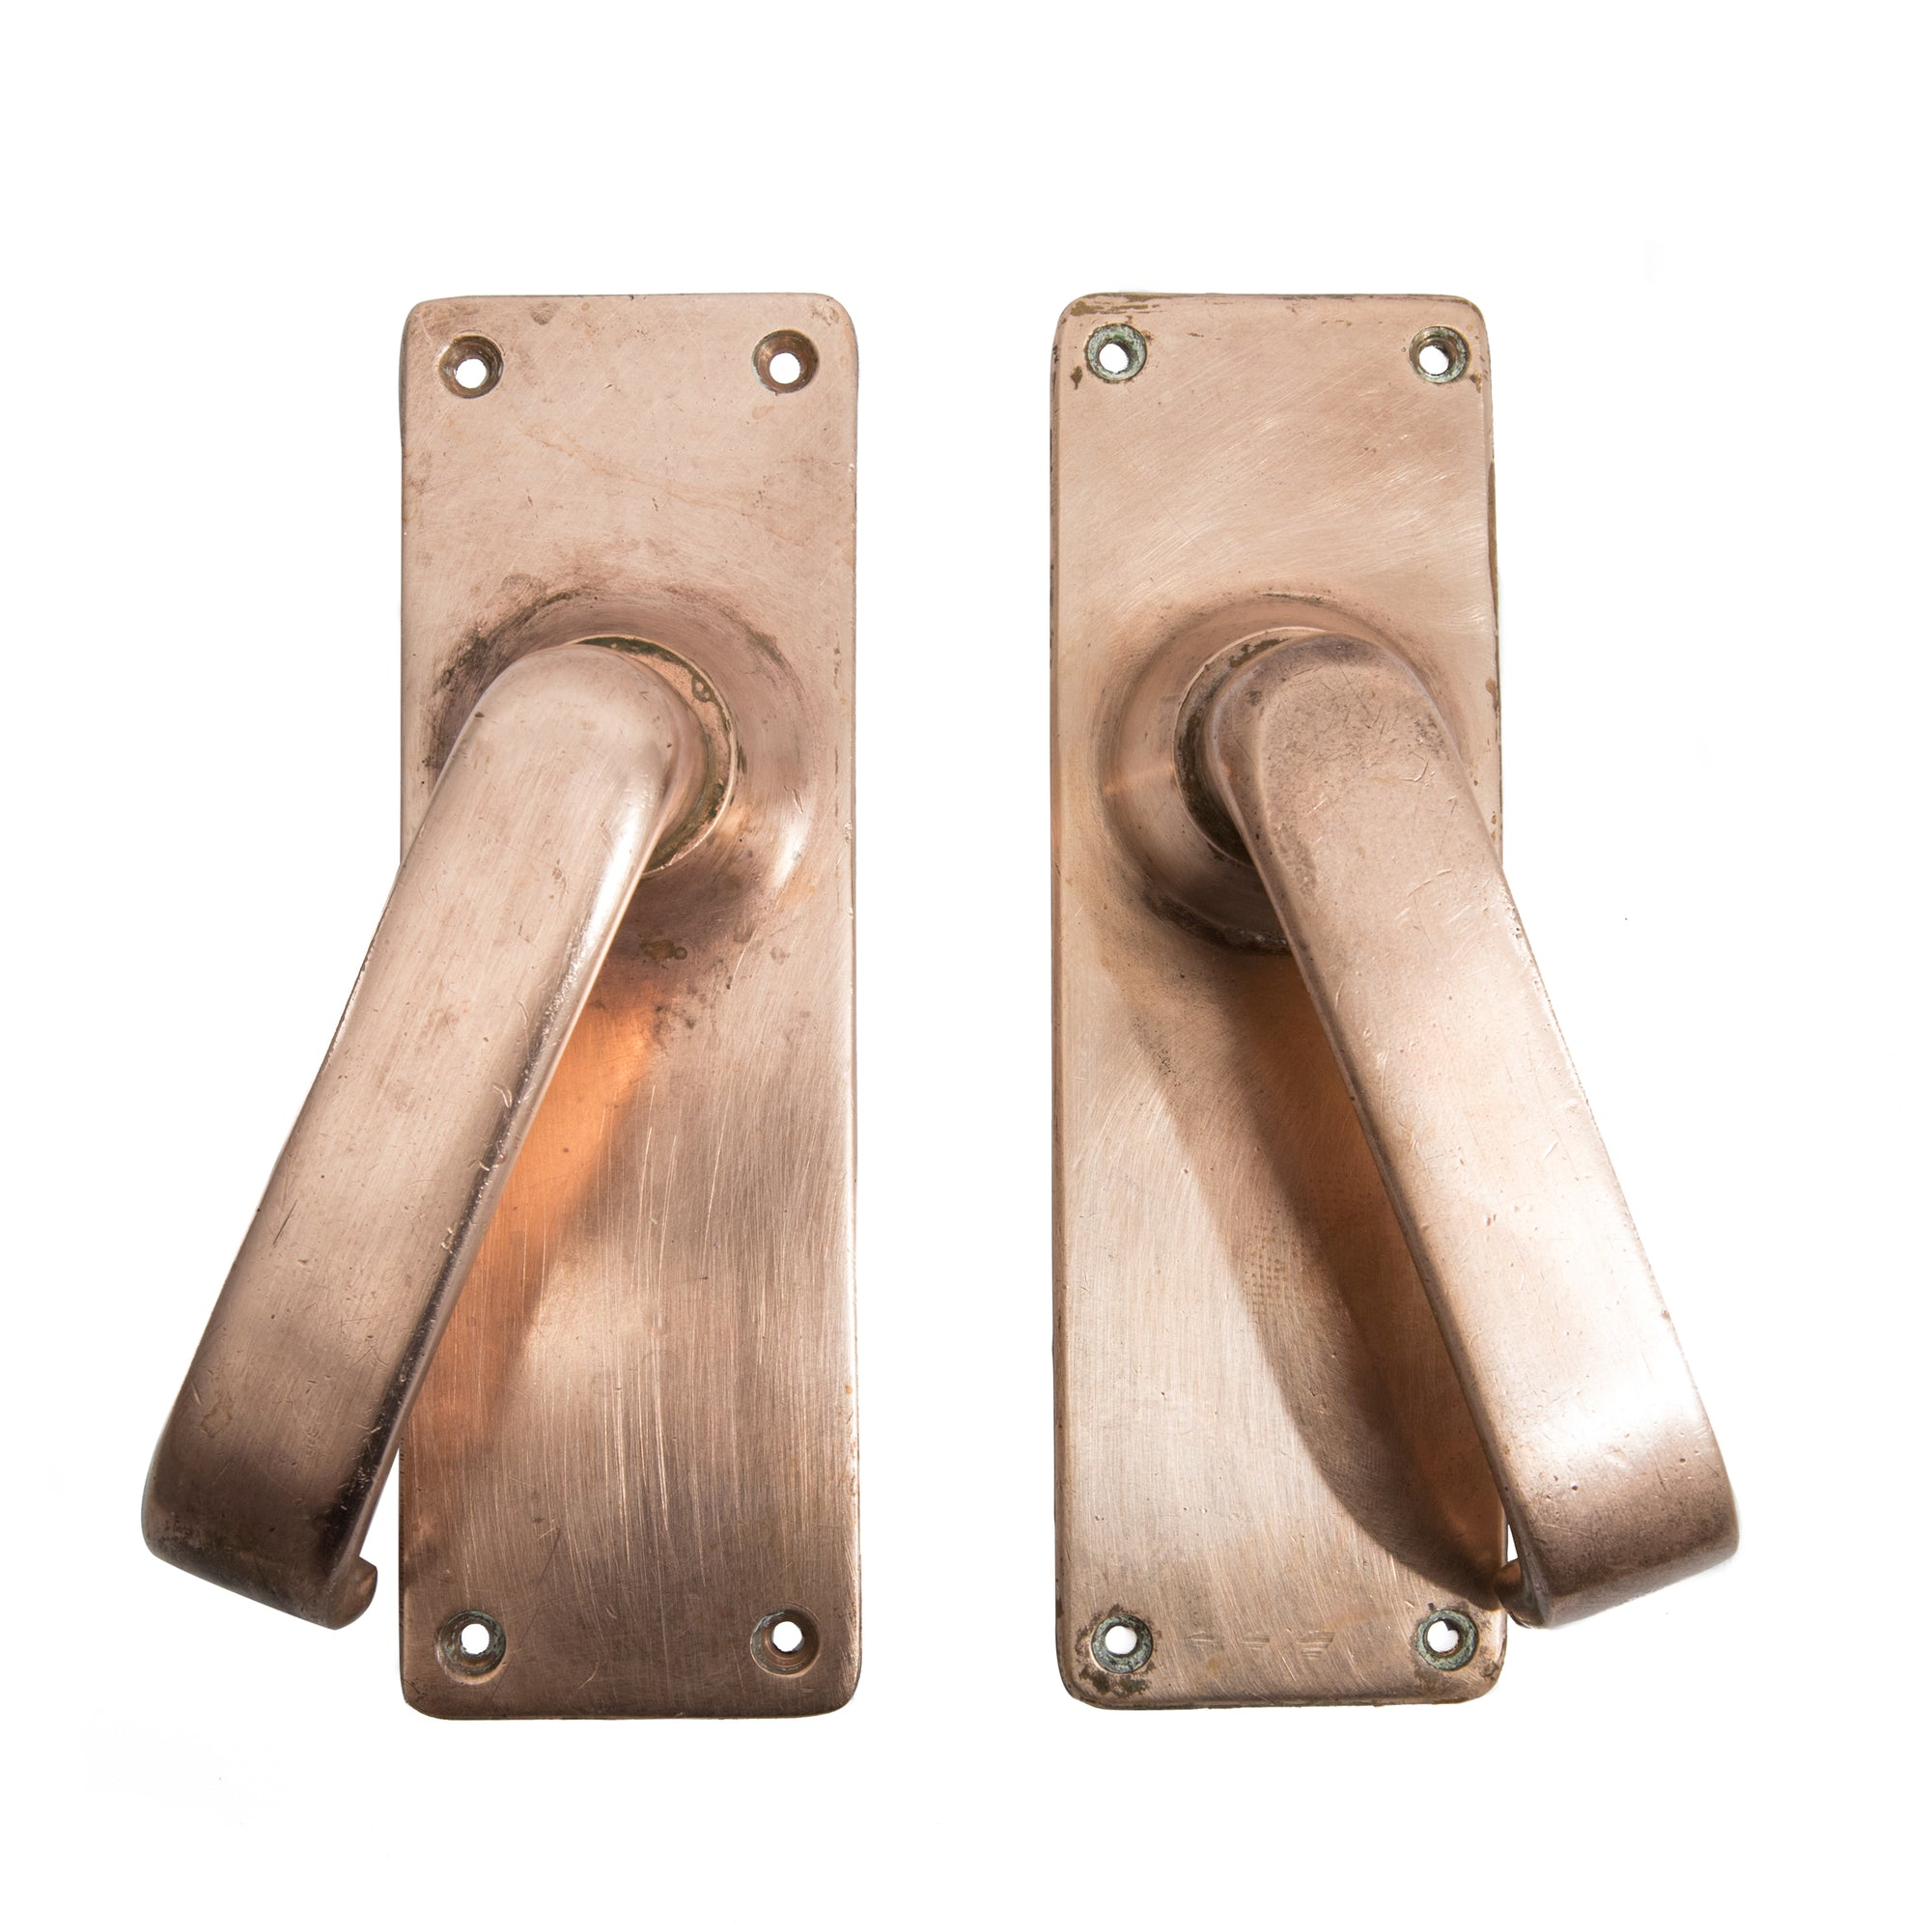 Reclaimed Art Deco Rose Brass Lever Door Handles | The Architectural Forum